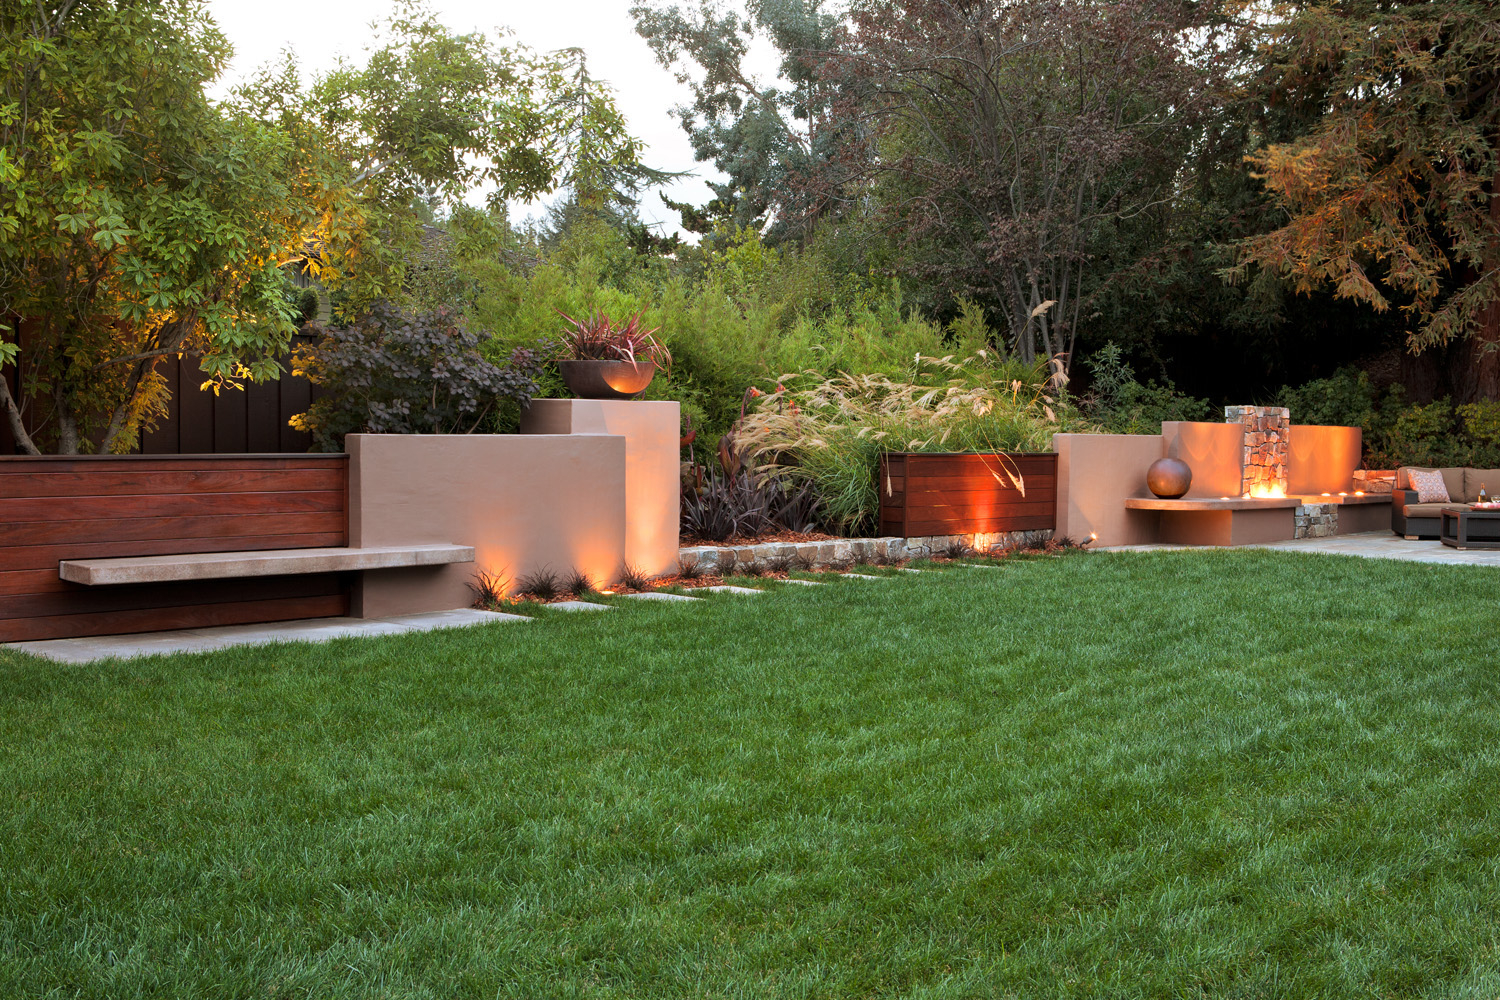 Fabulous Ideas For Fire Pits - Sunset - Sunset Magazine with regard to Backyard Landscaping Ideas With Fire Pit